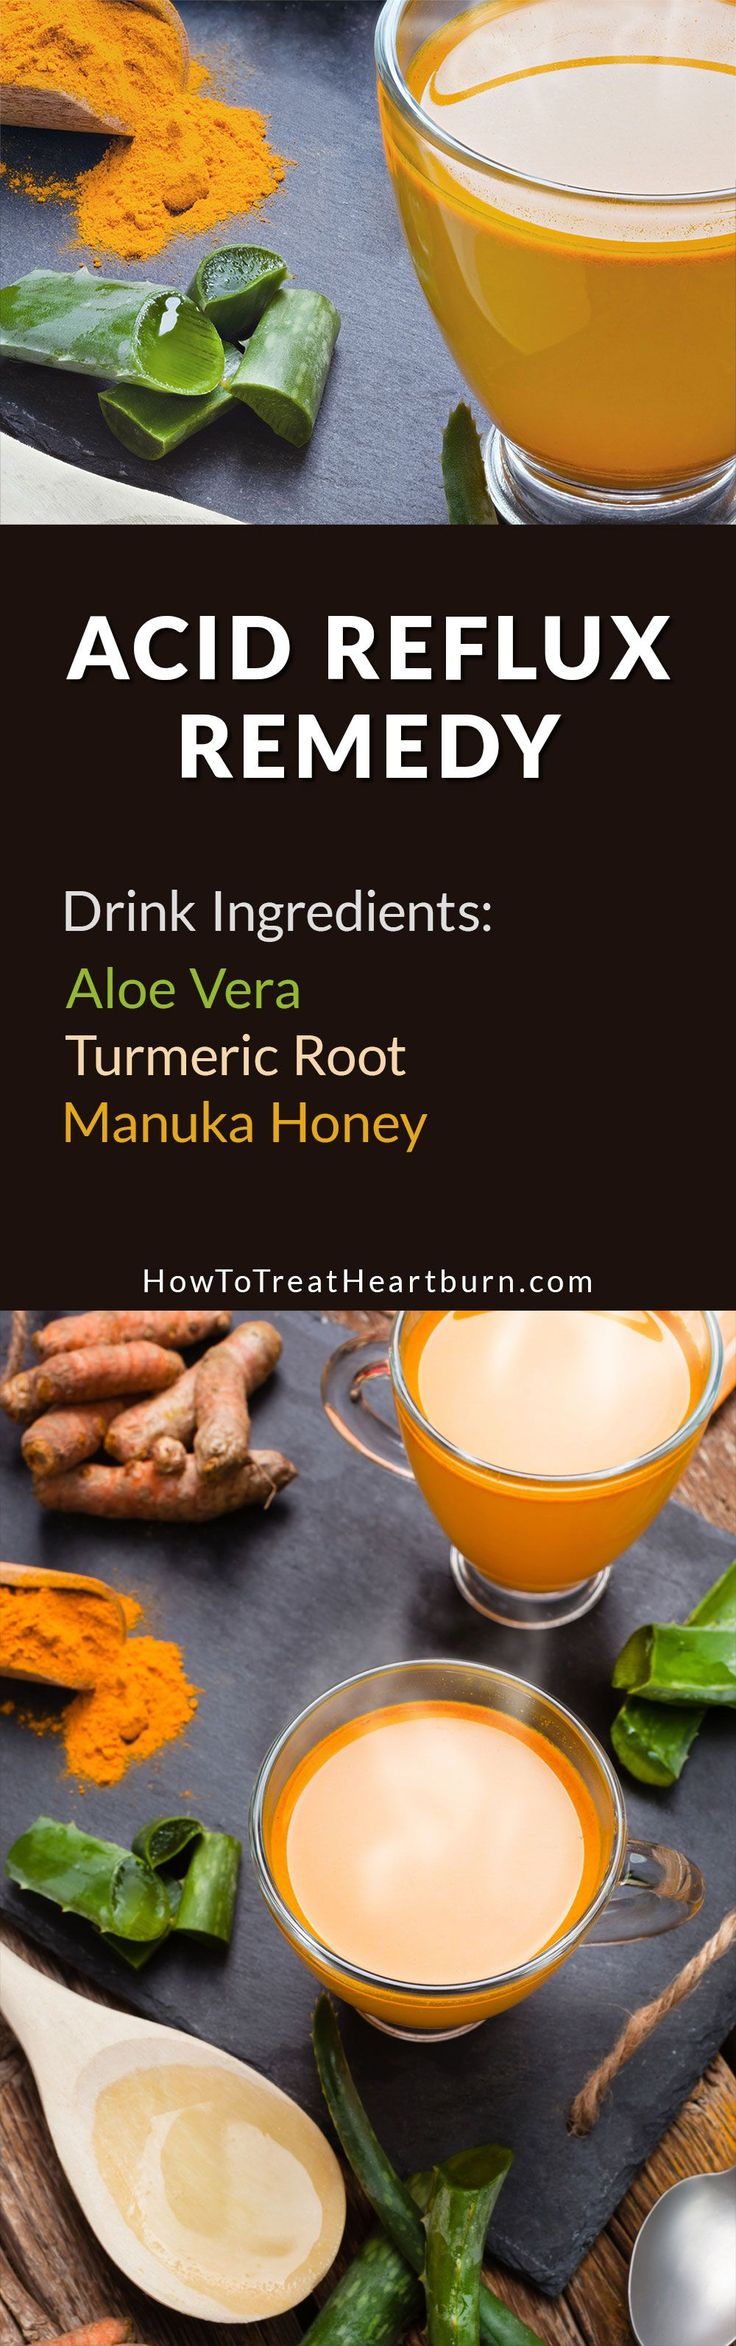 Aloe vera, turmeric root, and manuka honey can be combined to make this healthy drink that prevents acid reflux and treats heartburn without the side effects of popular heartburn medications.